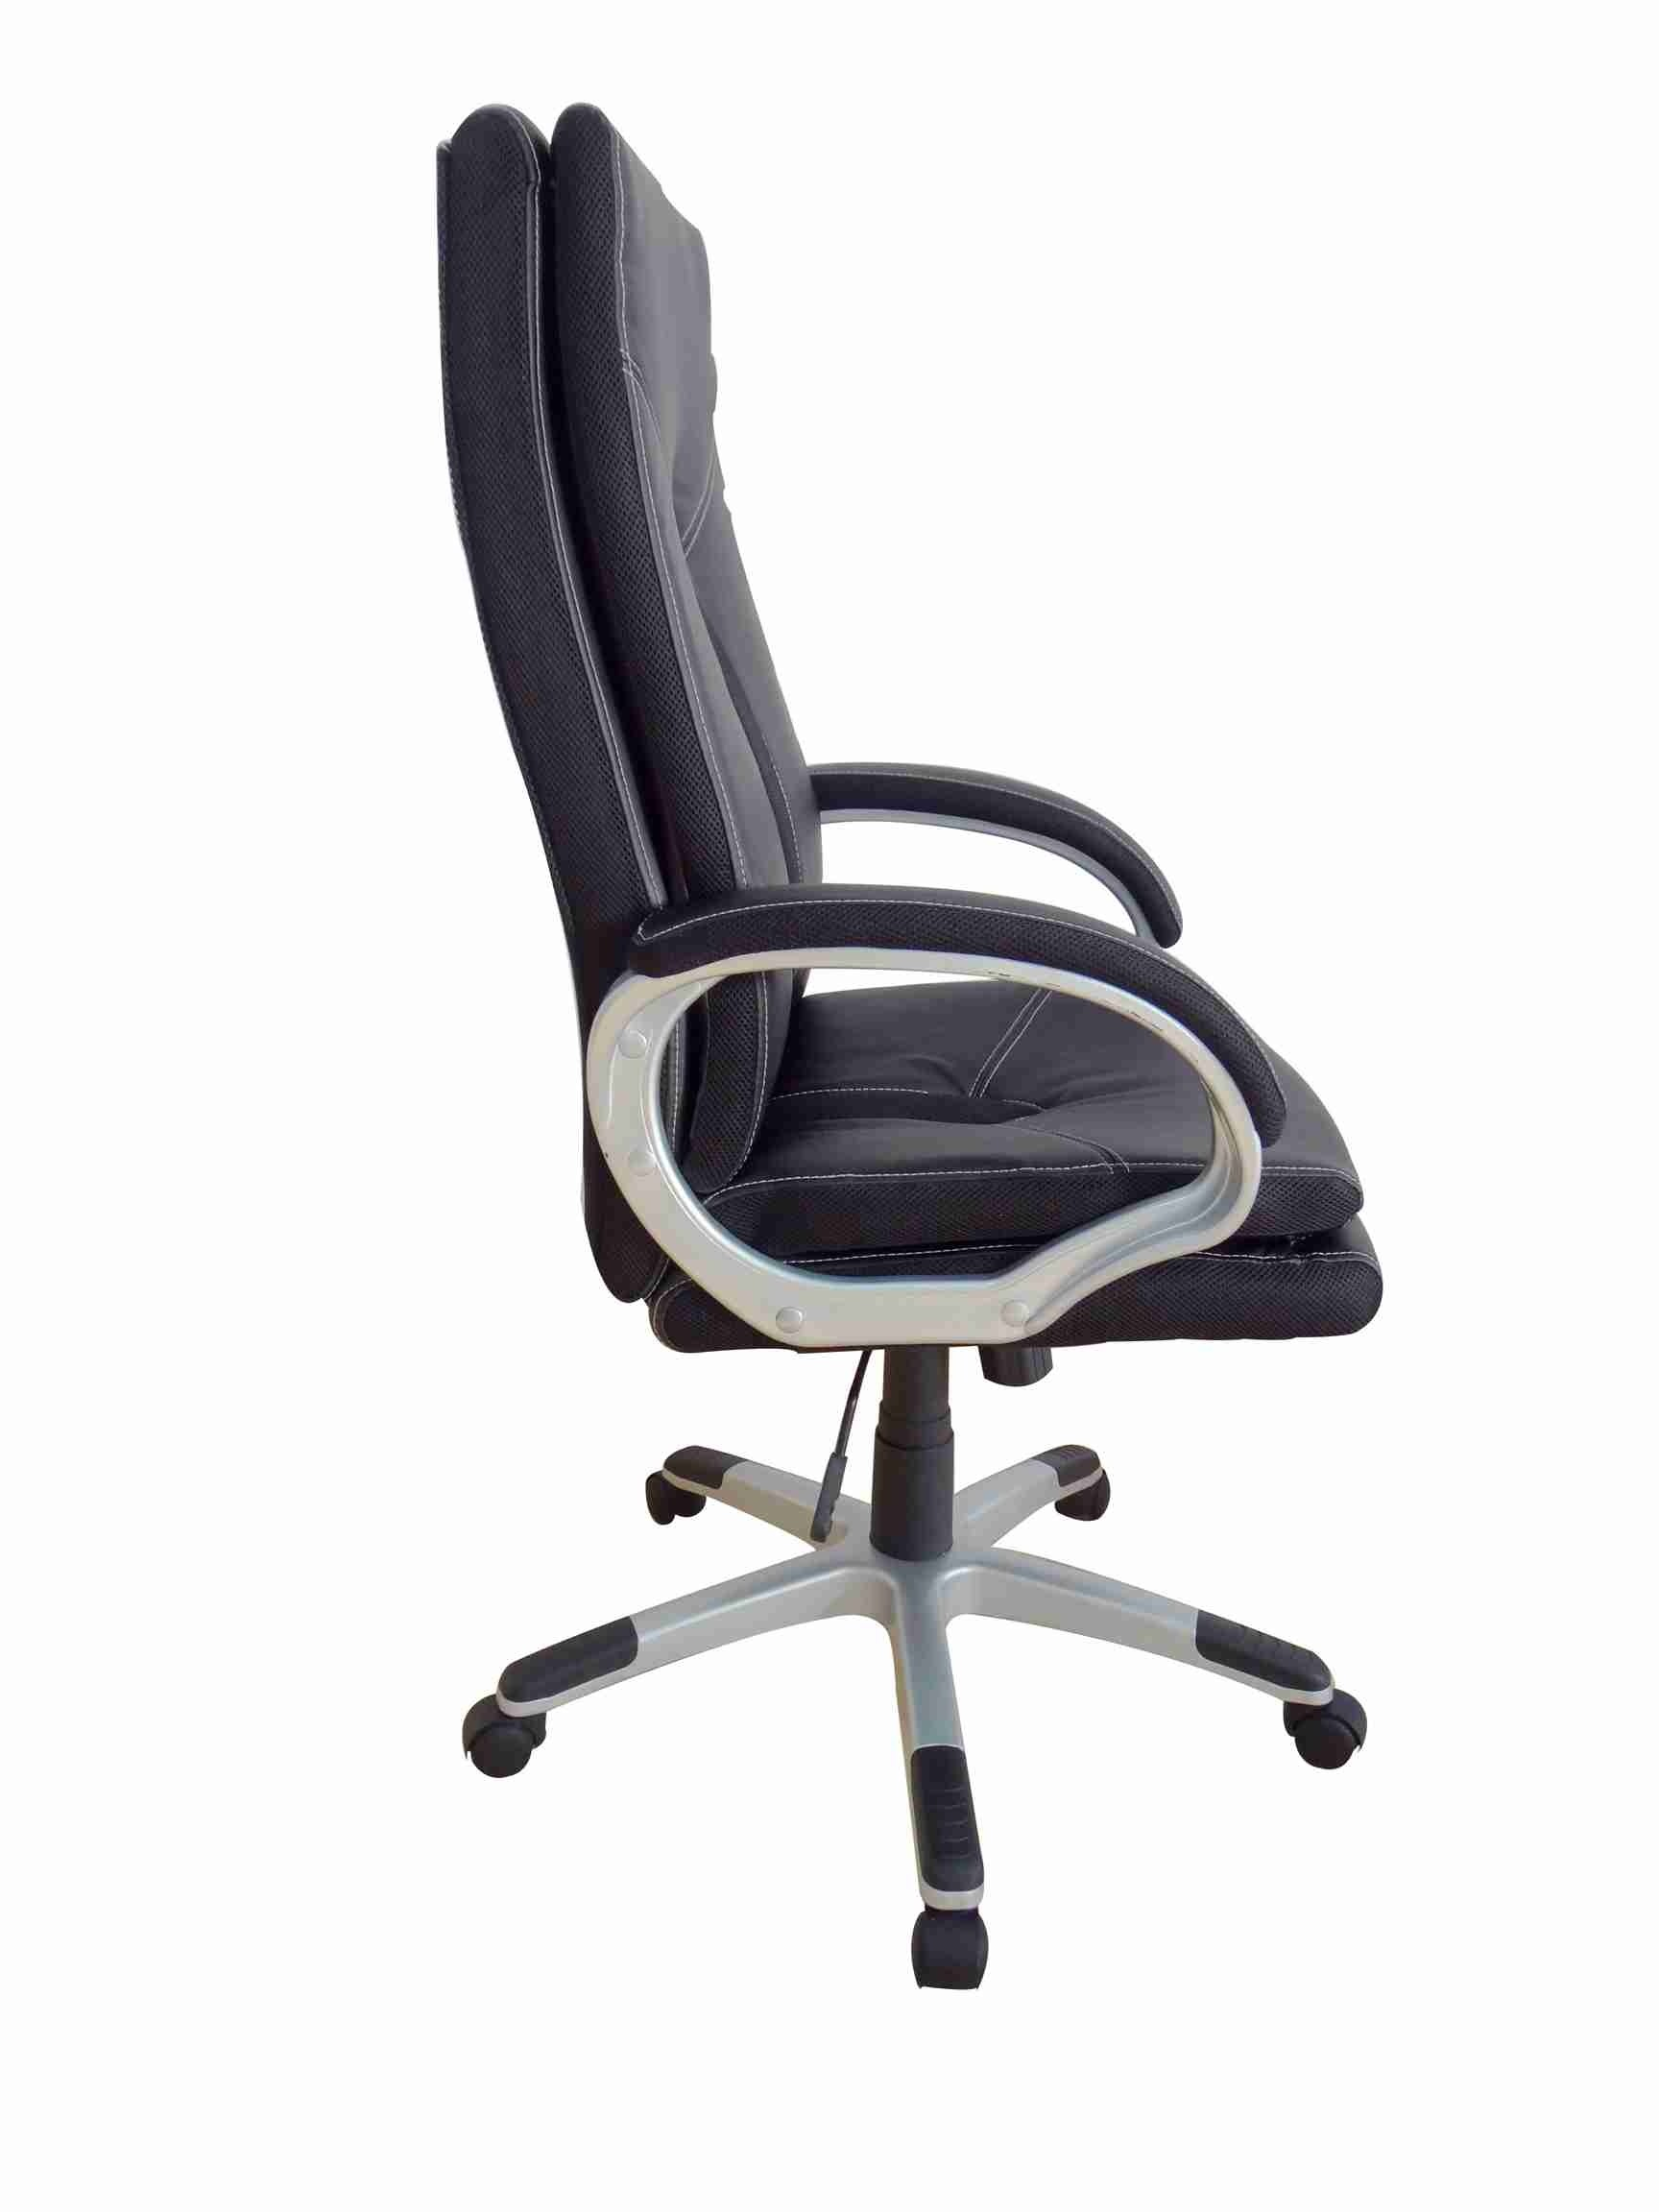 Office, Executive, Leader Chair With Bounded Leather And Adjustable Height-10786